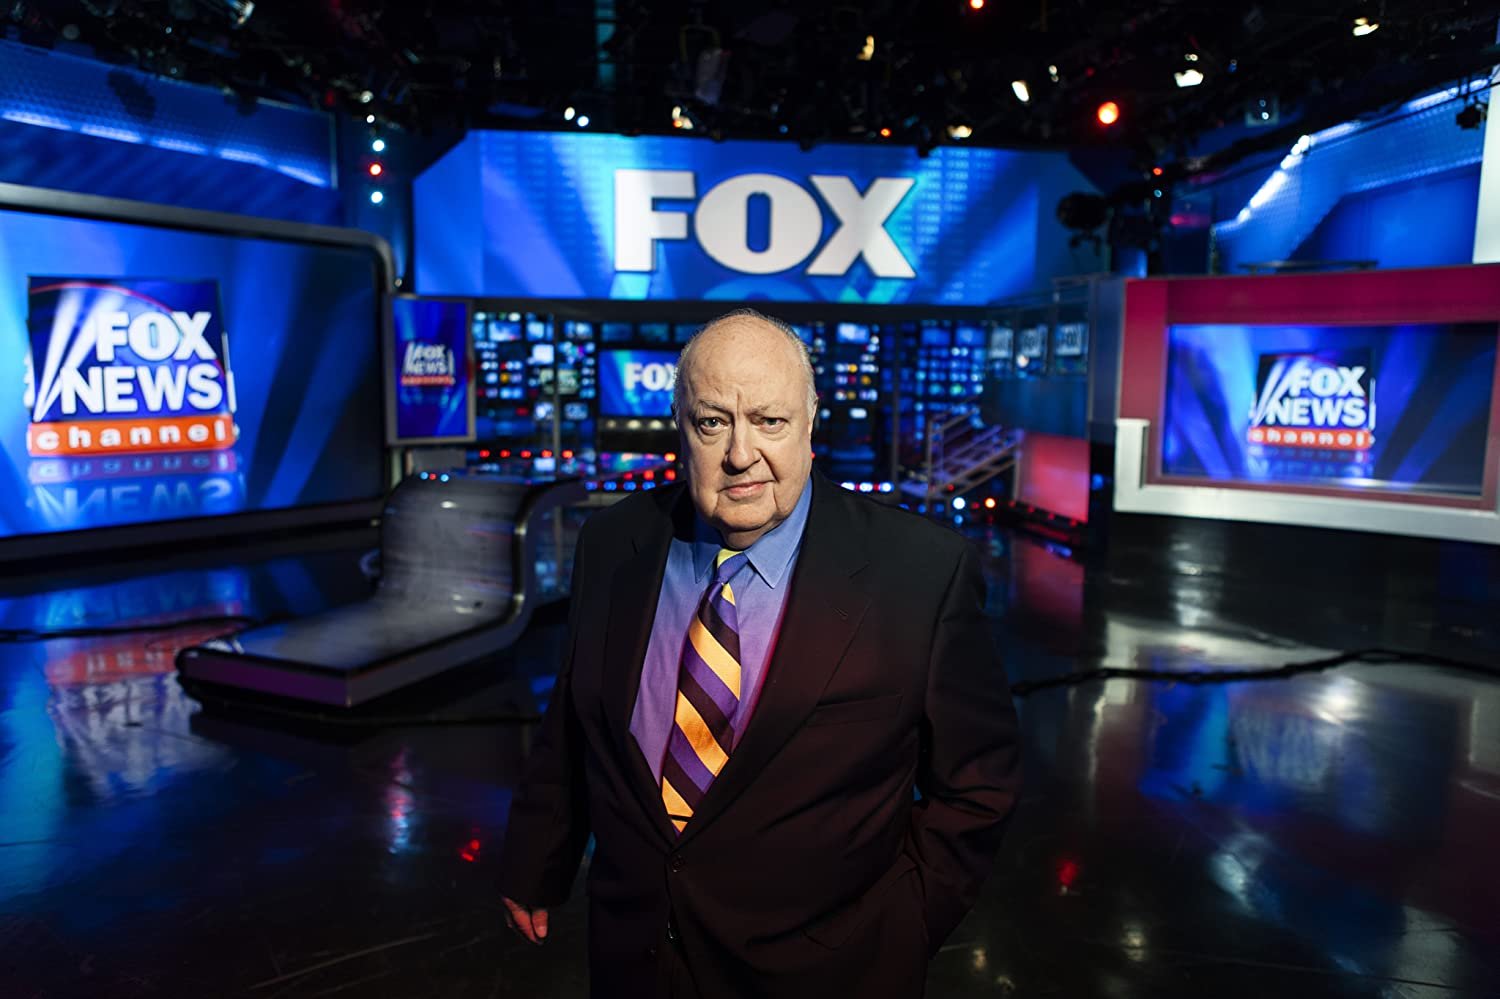 Roger Ailes in Divide and Conquer: The Story of Roger Ailes (2018)